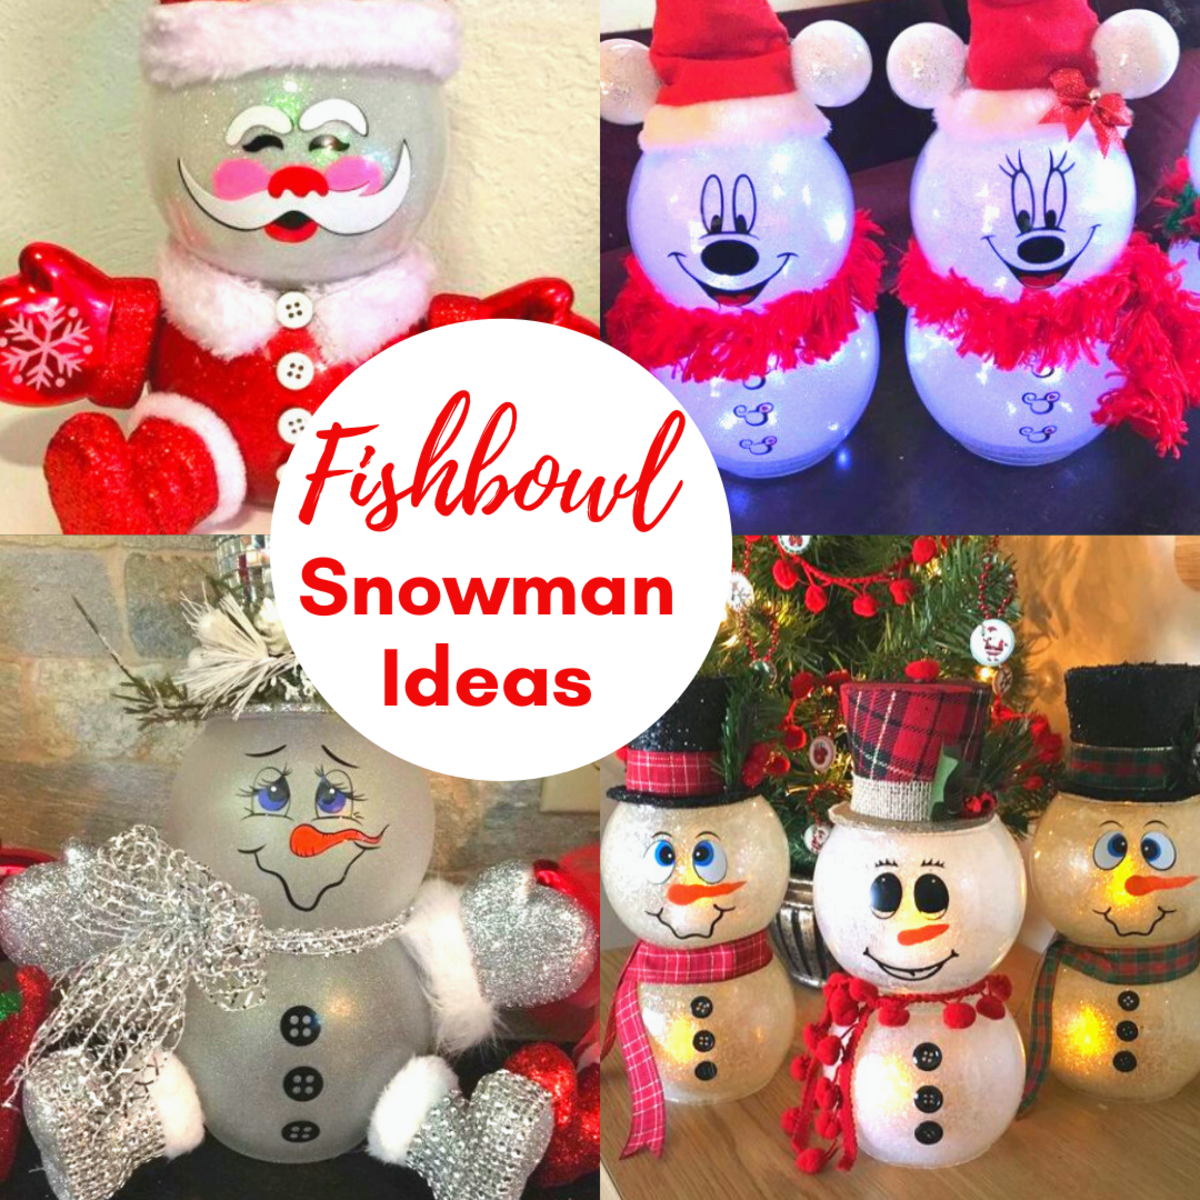 fish-bowl-snowman-ideas